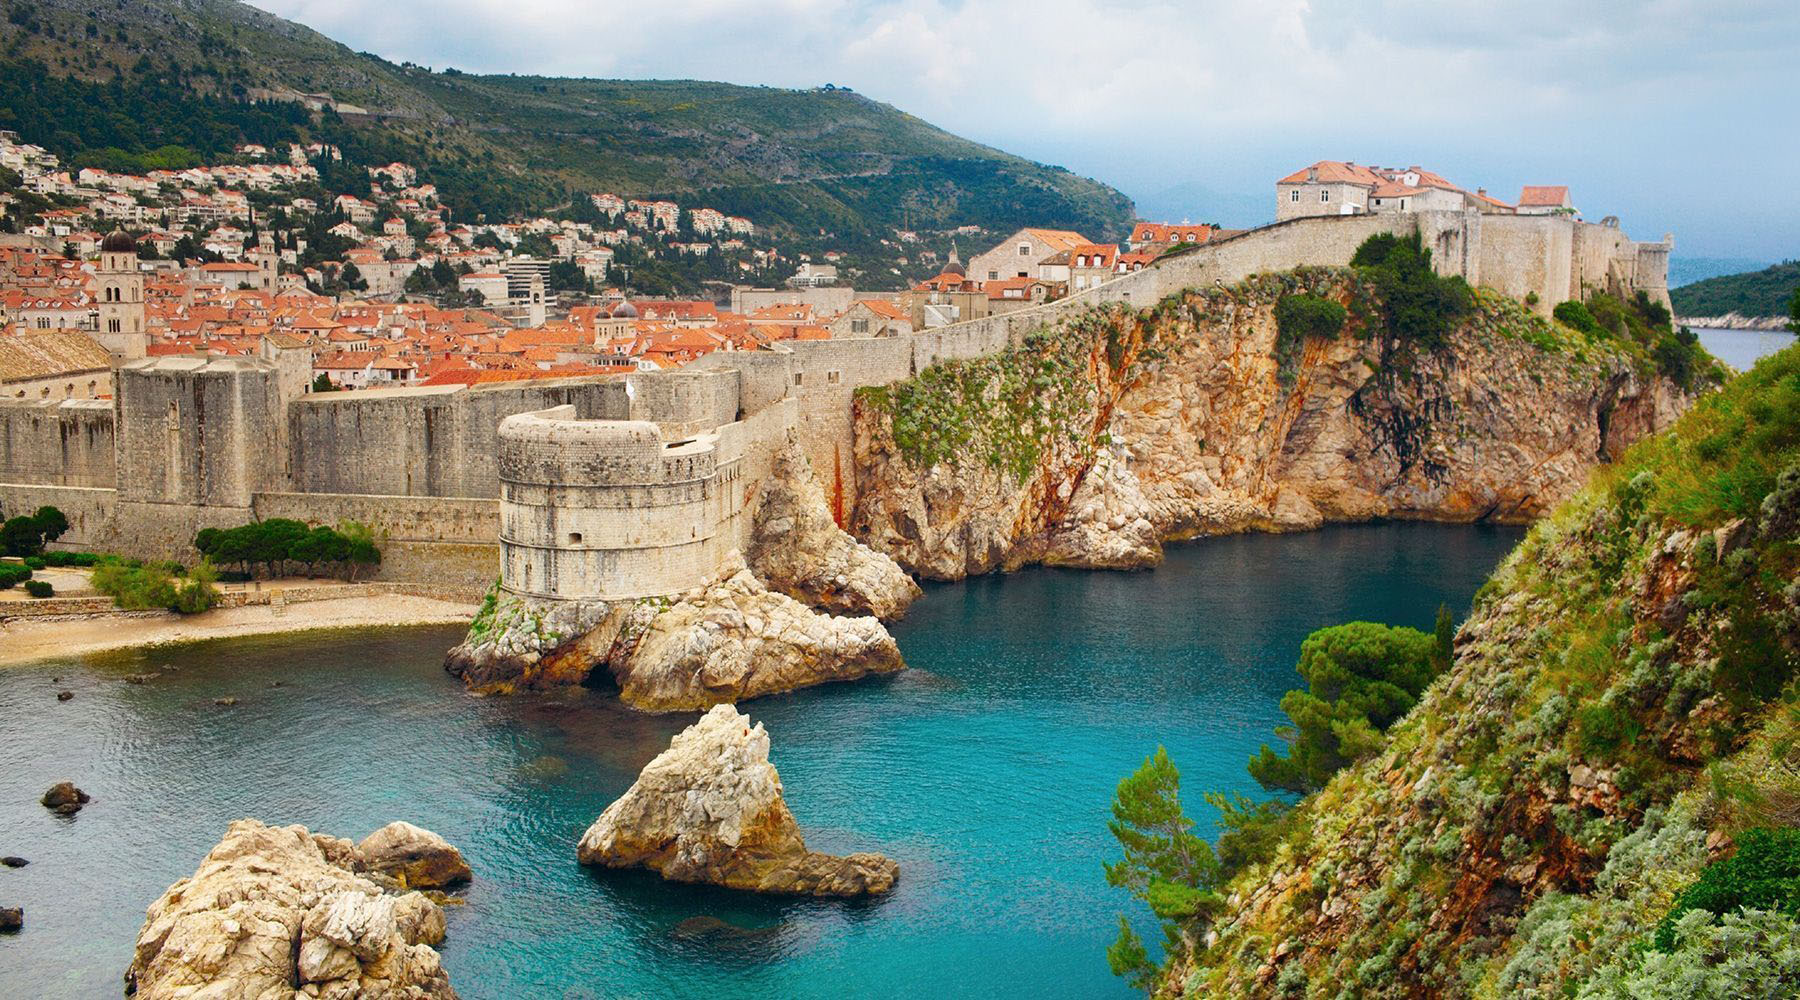 Cruise to Dubrovnik, Croatia